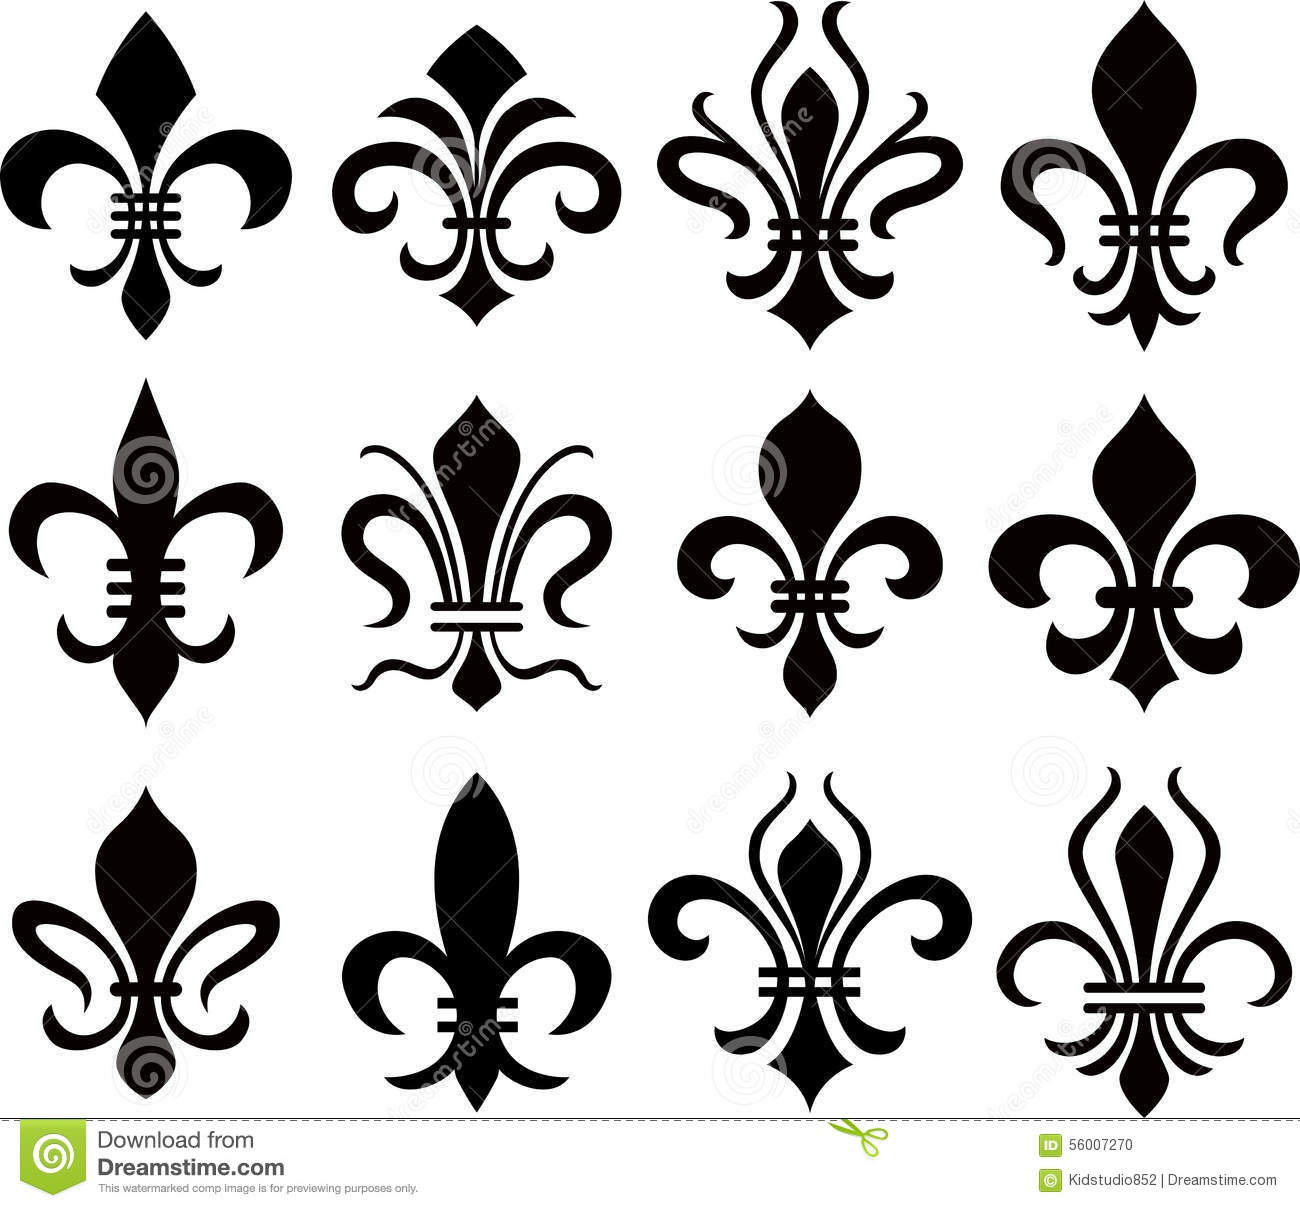 fleur de lys symbol stock vector illustration of abstract Flour De Lis Fleur De Lis Symbol